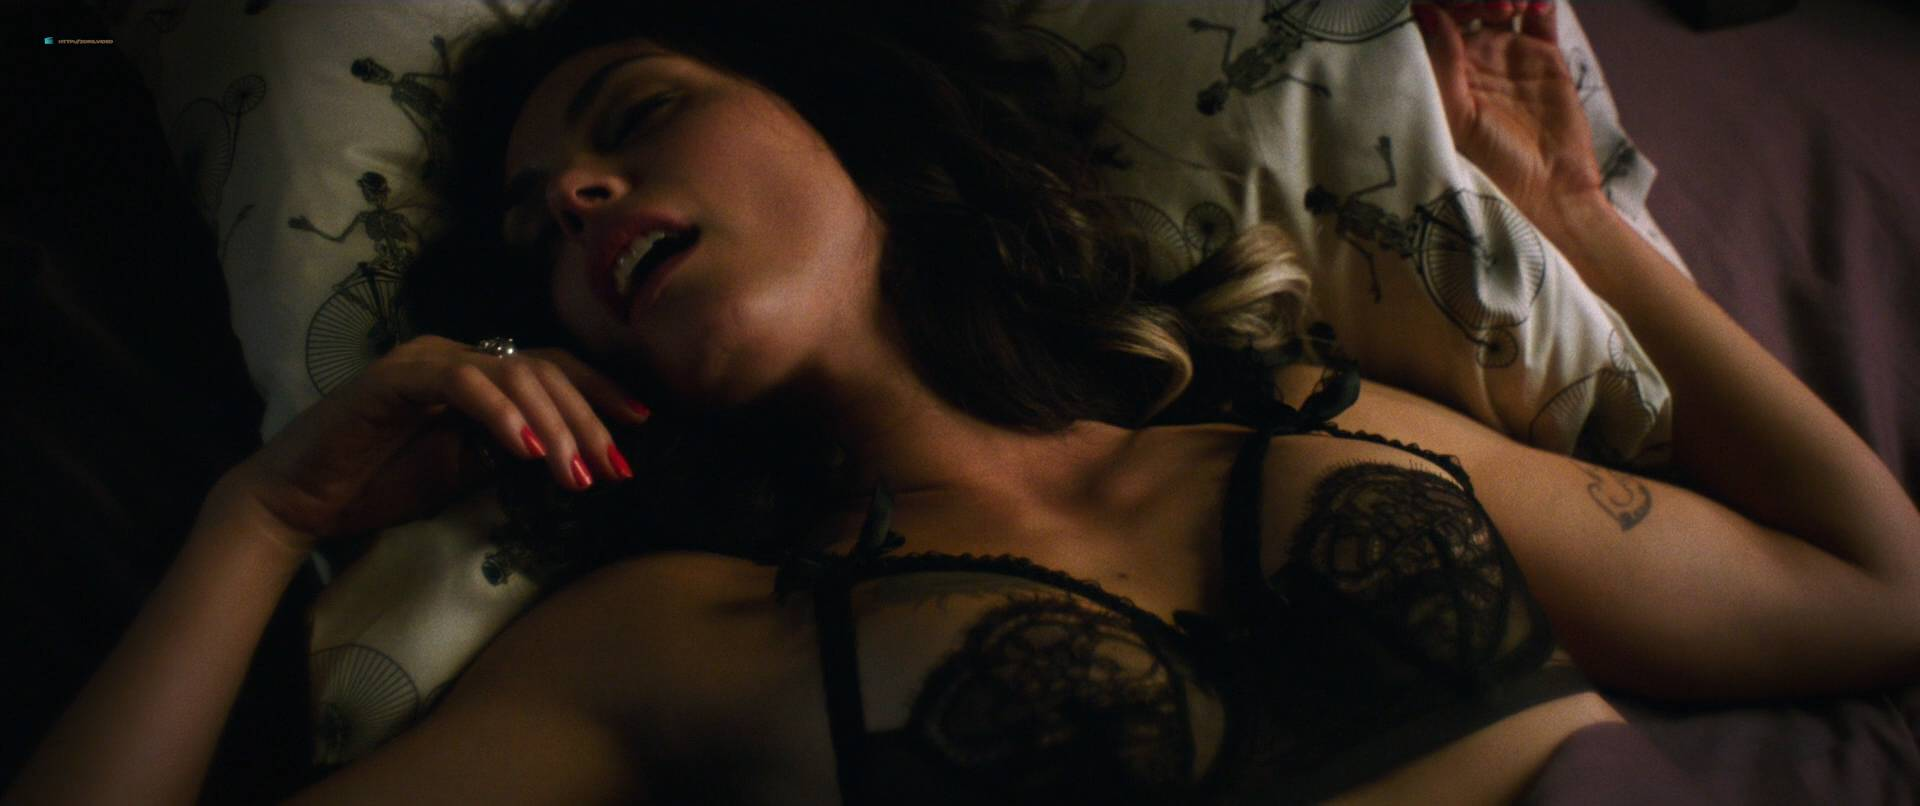 Morena Baccarin hot sex and uber sexy - Deadpool (2016) HD 1080p (9)